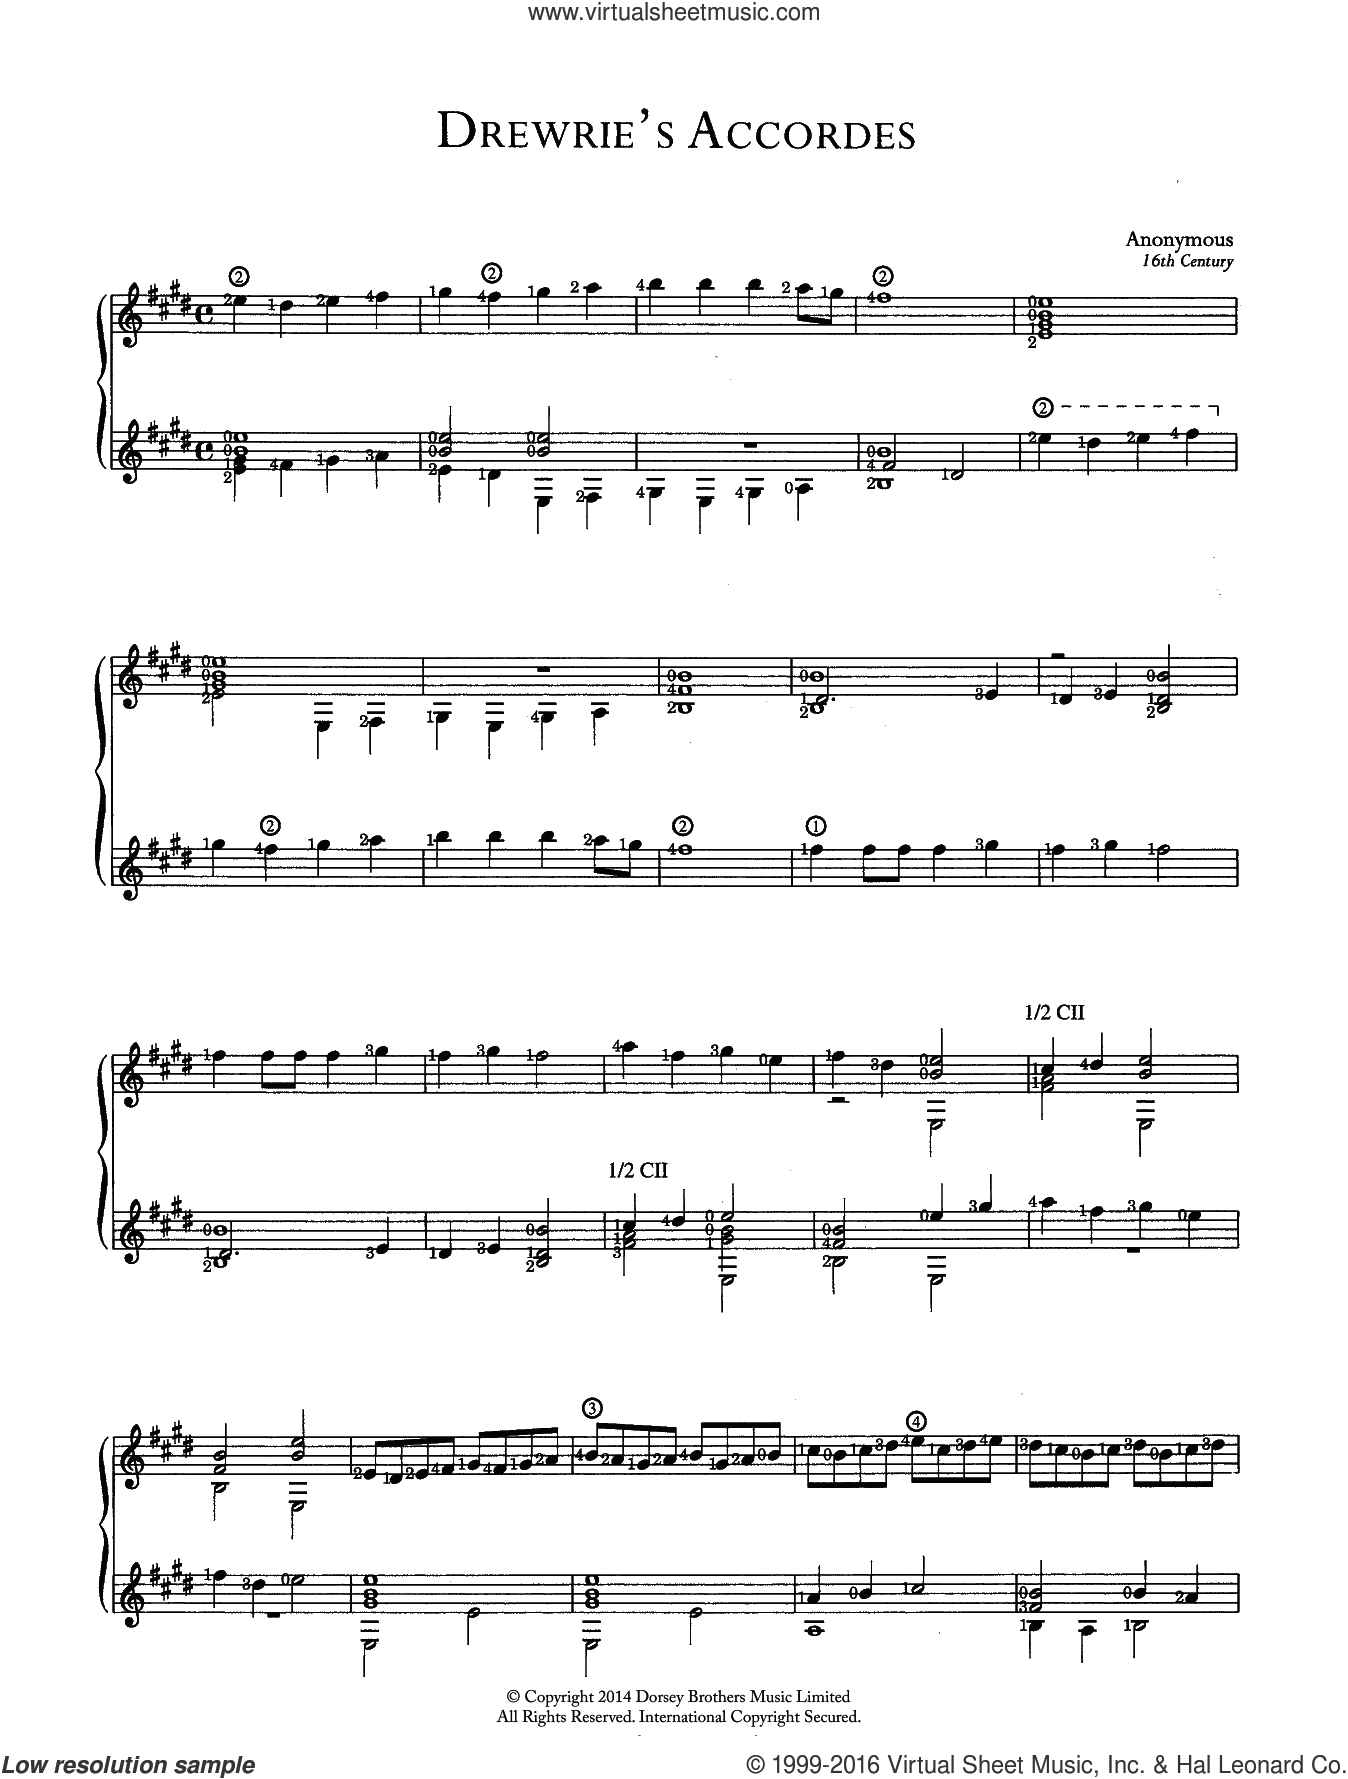 Drewrie's Accordes sheet music for guitar solo (chords) by Anonymous, classical score, easy guitar (chords). Score Image Preview.